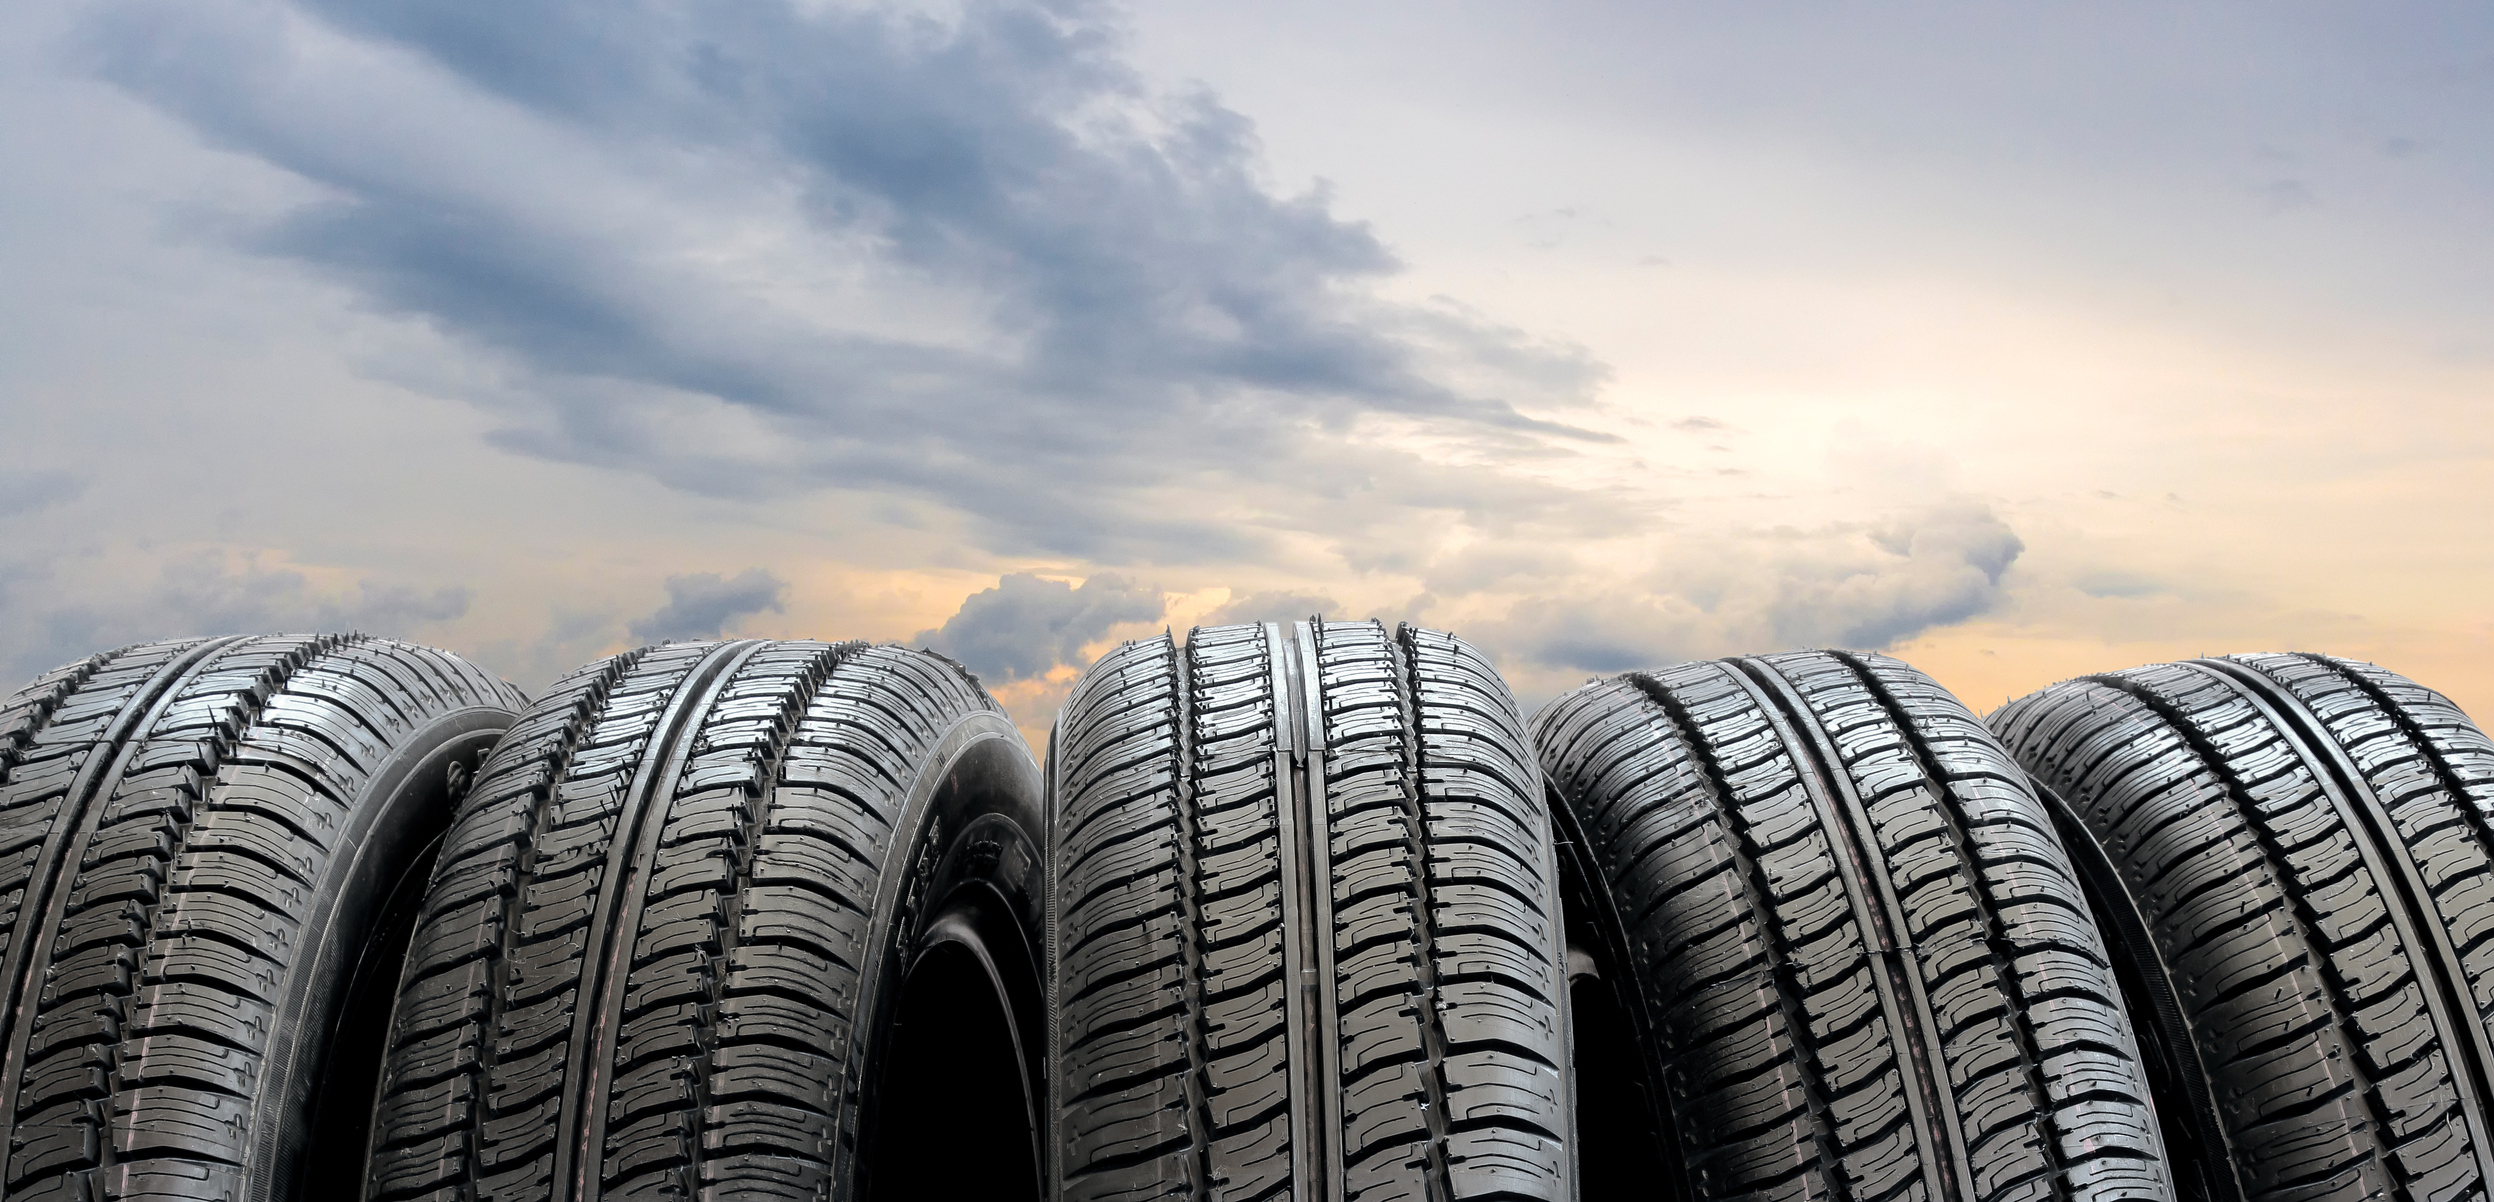 Car Tires: What Matters Most When Replacing Your Rubber on avanteinsurance.com